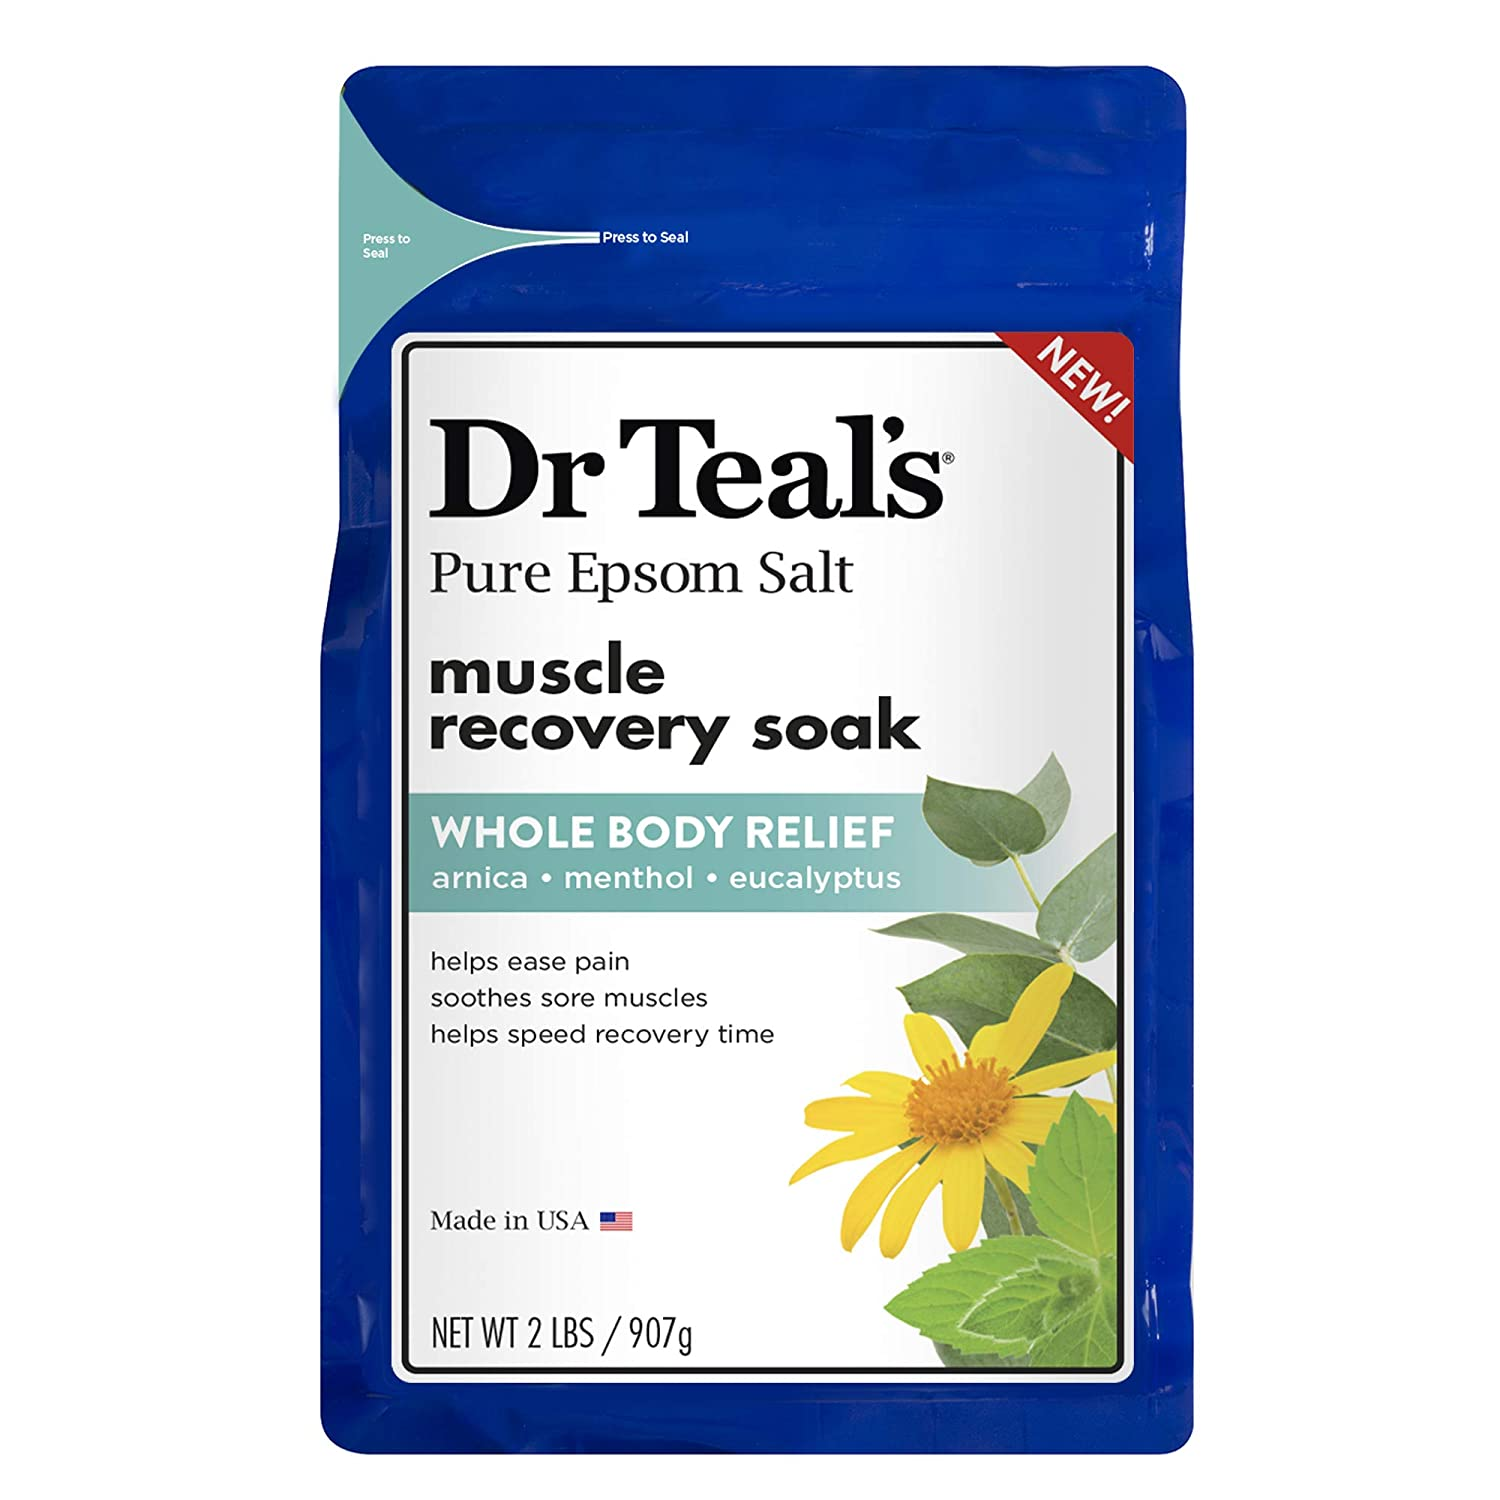 Dr. Teal's Epsom Salt - Muscle Recovery Soak - Whole Body Relief with Arnica, Menthol, Eucalyptus - 2lb bag Dr. Teal's